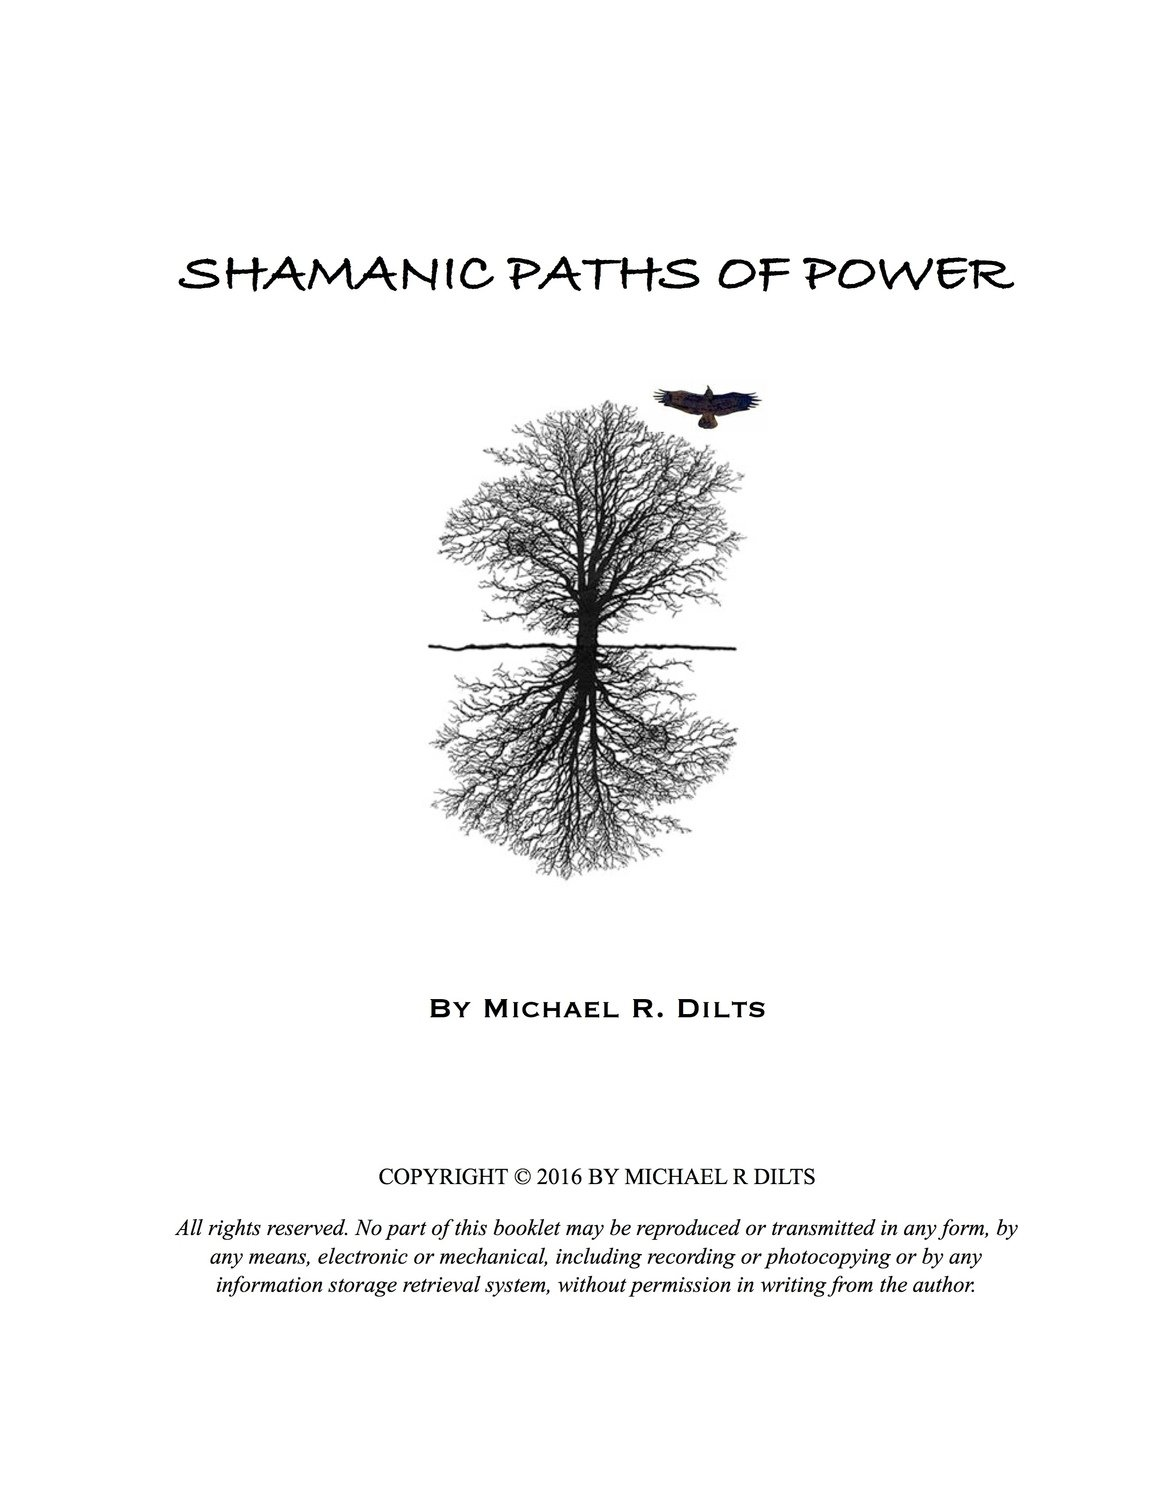 Shamanic Paths of Power by Michael R. Dilts